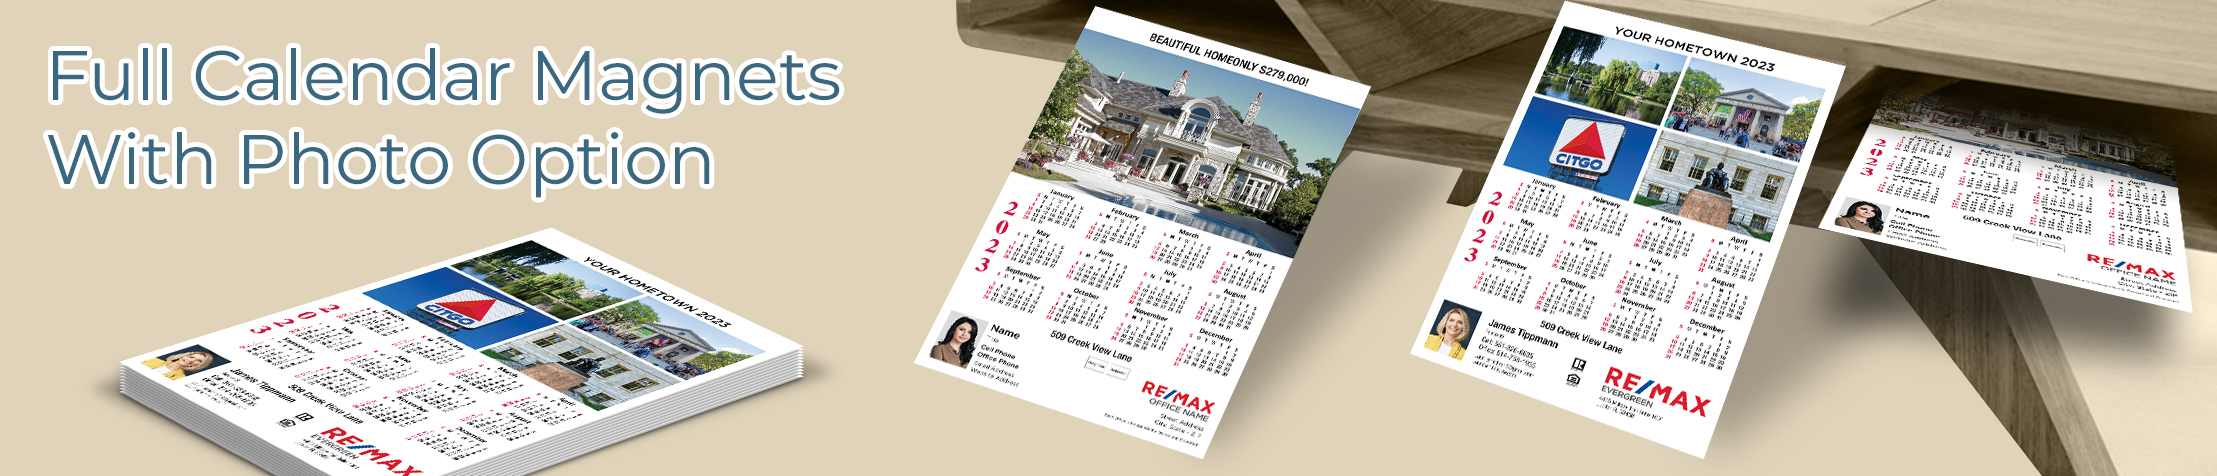 RE/MAX Real Estate Full Calendar Magnets With Photo Option - RE/MAX 2019 calendars, full-color | BestPrintBuy.com